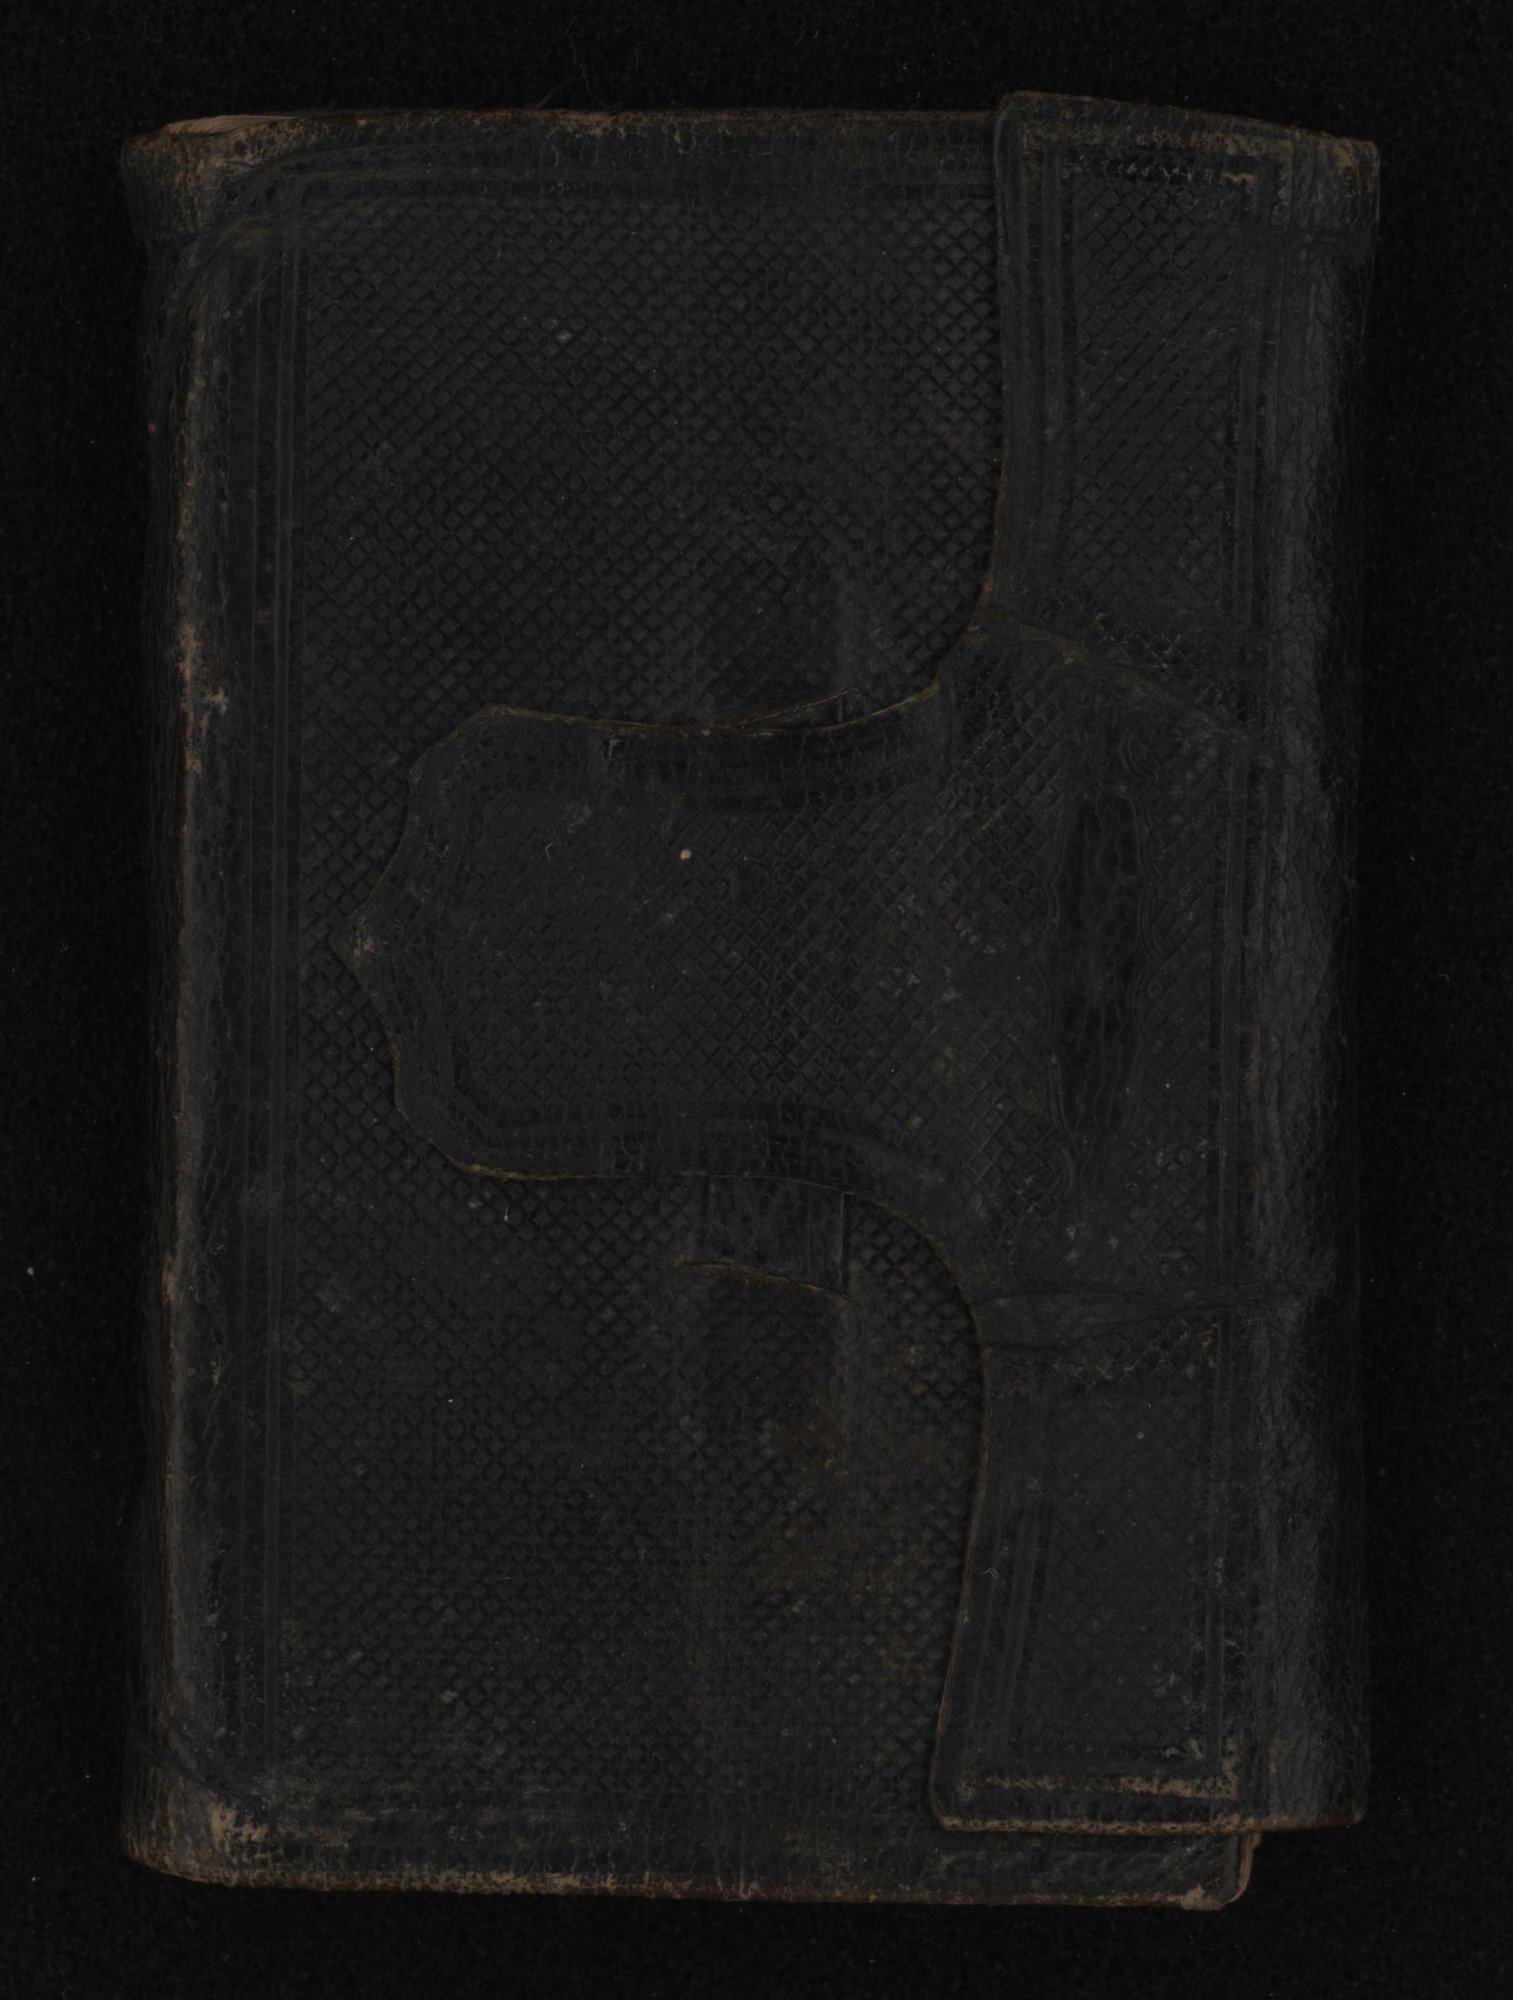 Ms2008-002_CohnJacob_Diary_1864_Frontcover.jpg